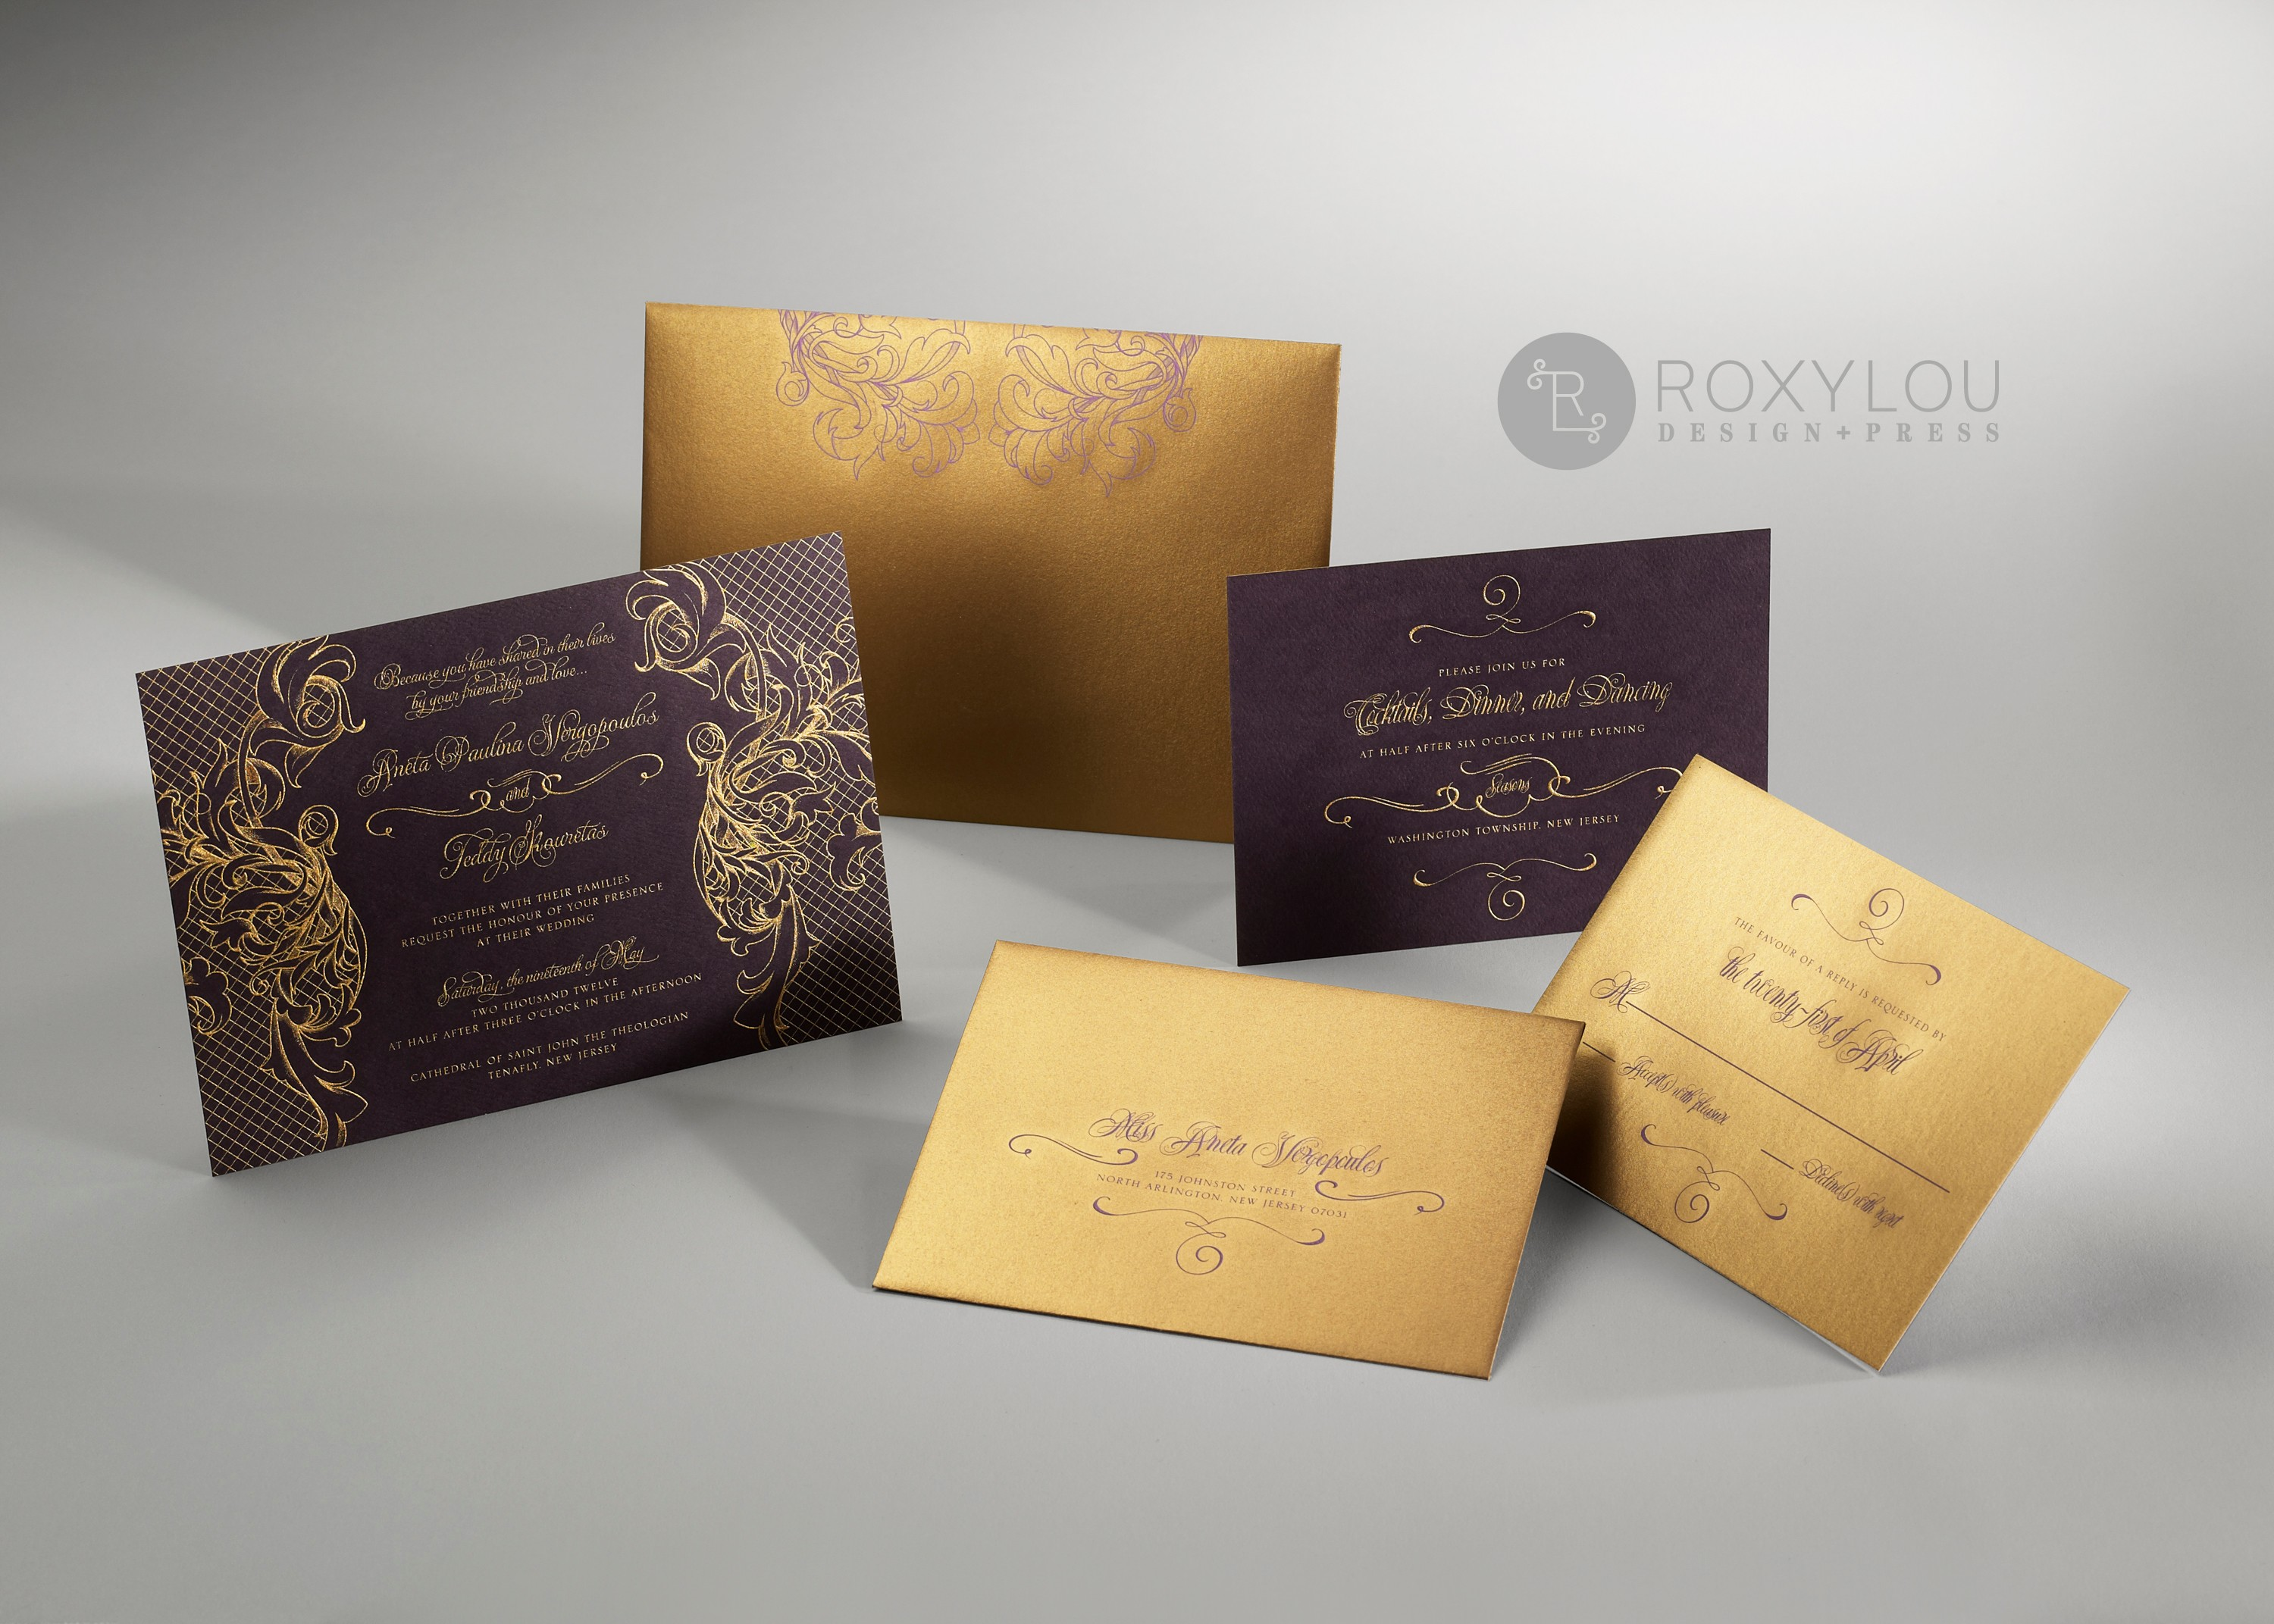 The stunning Regalia invitation suite features gold engraving on a contrast color card with decorative paper backing.  Your engraved inserts are tucked neatly into an engraved contrast wrap.  Very striking in eggplant and gold as pictured, but available in your choice of colors.